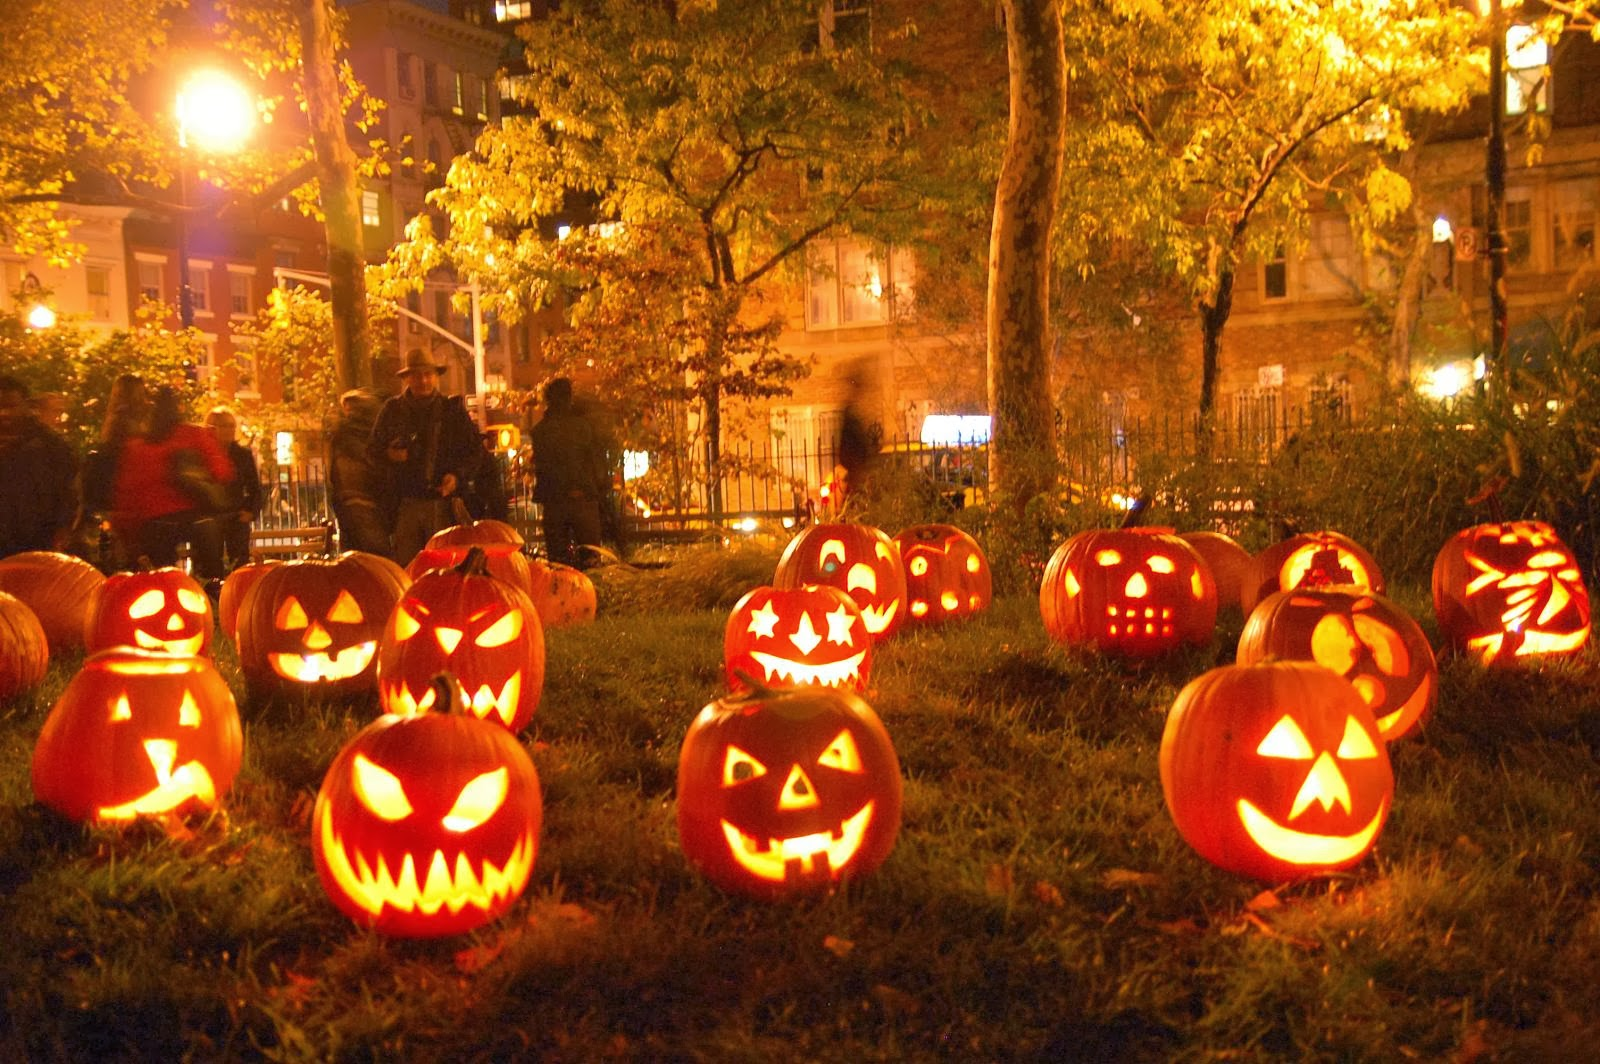 the pagan roots of halloween / should christians celebrate halloween